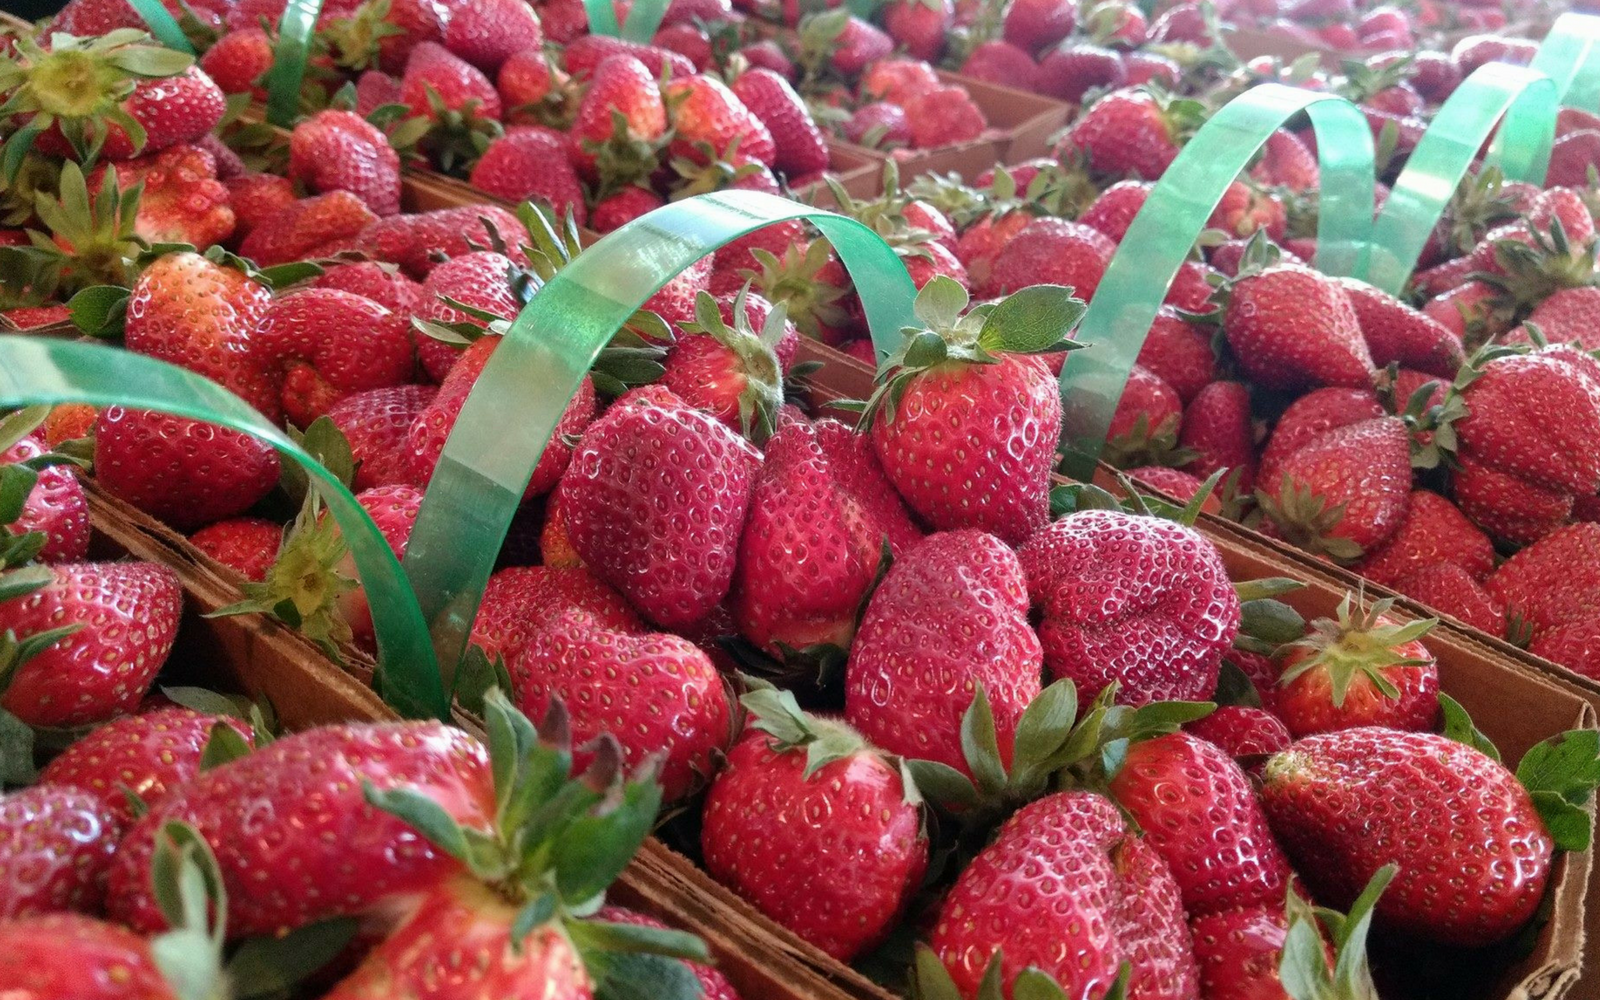 The Best Strawberry Farm in Gaston County